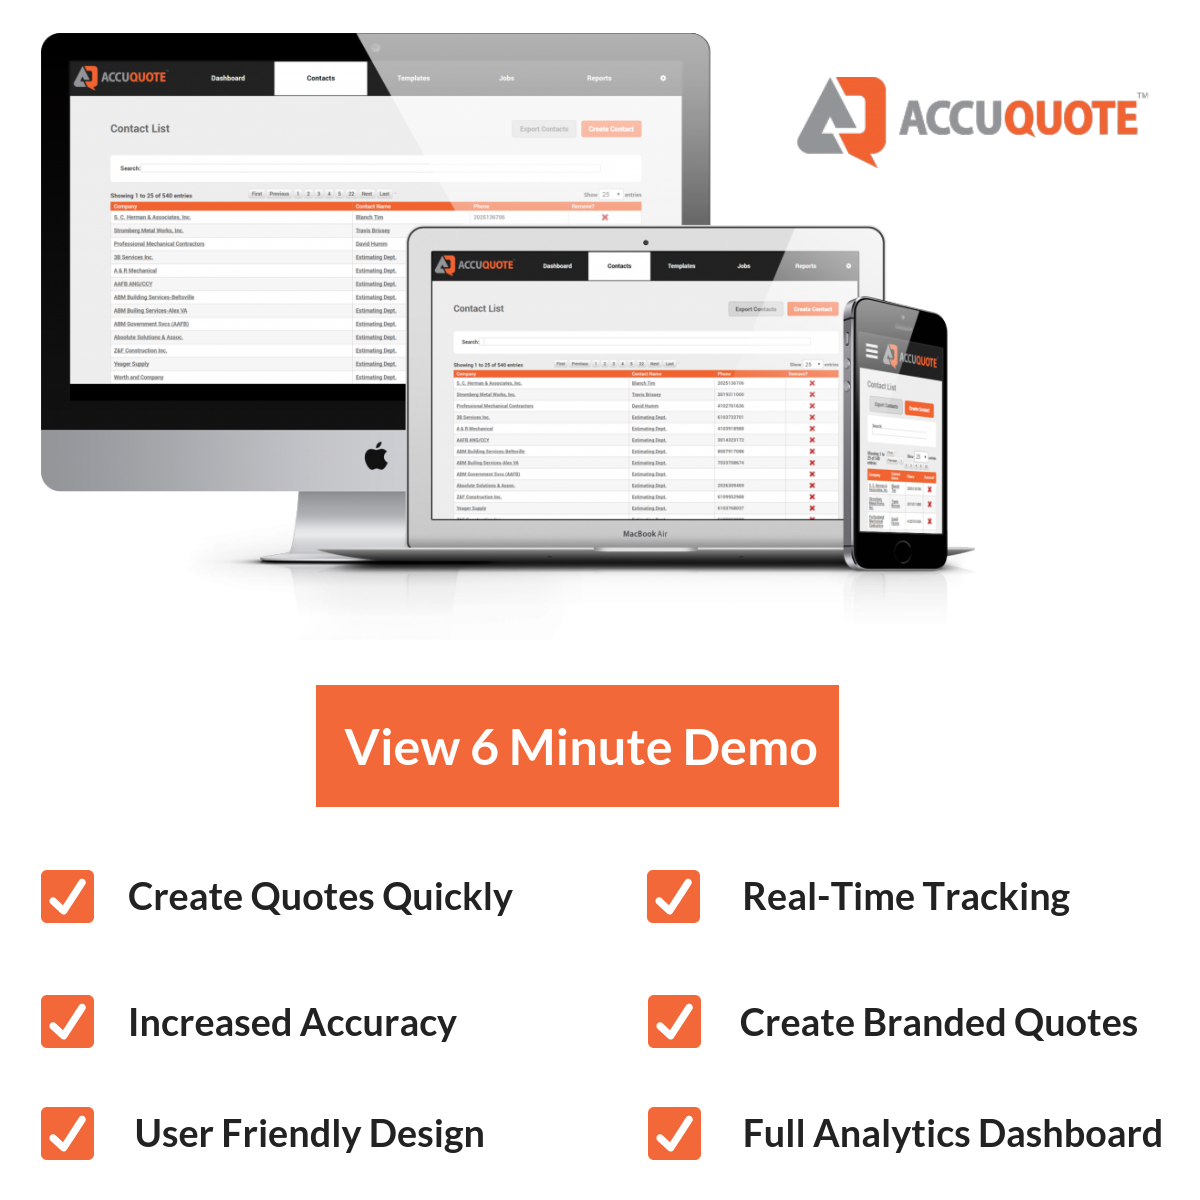 6 Min Demo image for Schedule a Demo - AccuQuote Direct